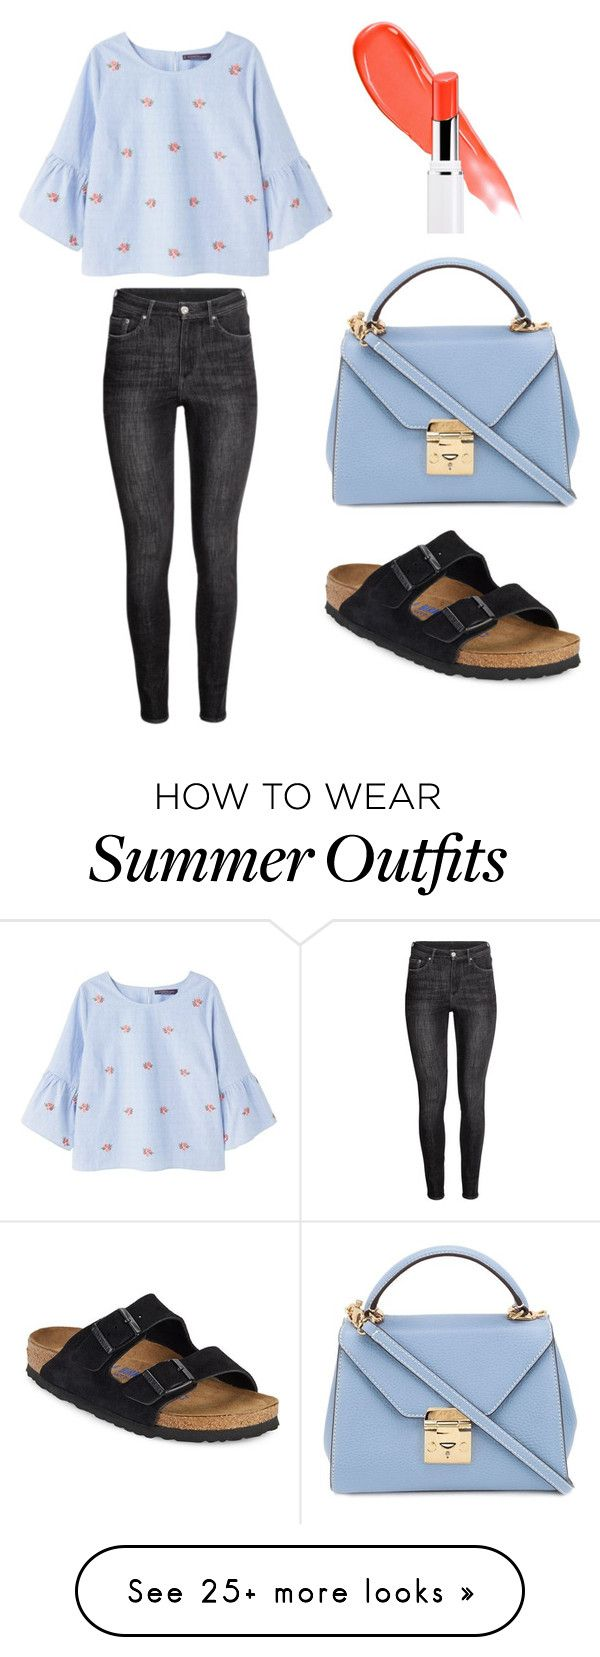 """Smart Summer Outfit"" by immylilly on Polyvore featuring Violeta by Mango, Birkenstock, Mark Cross and Lancôme"